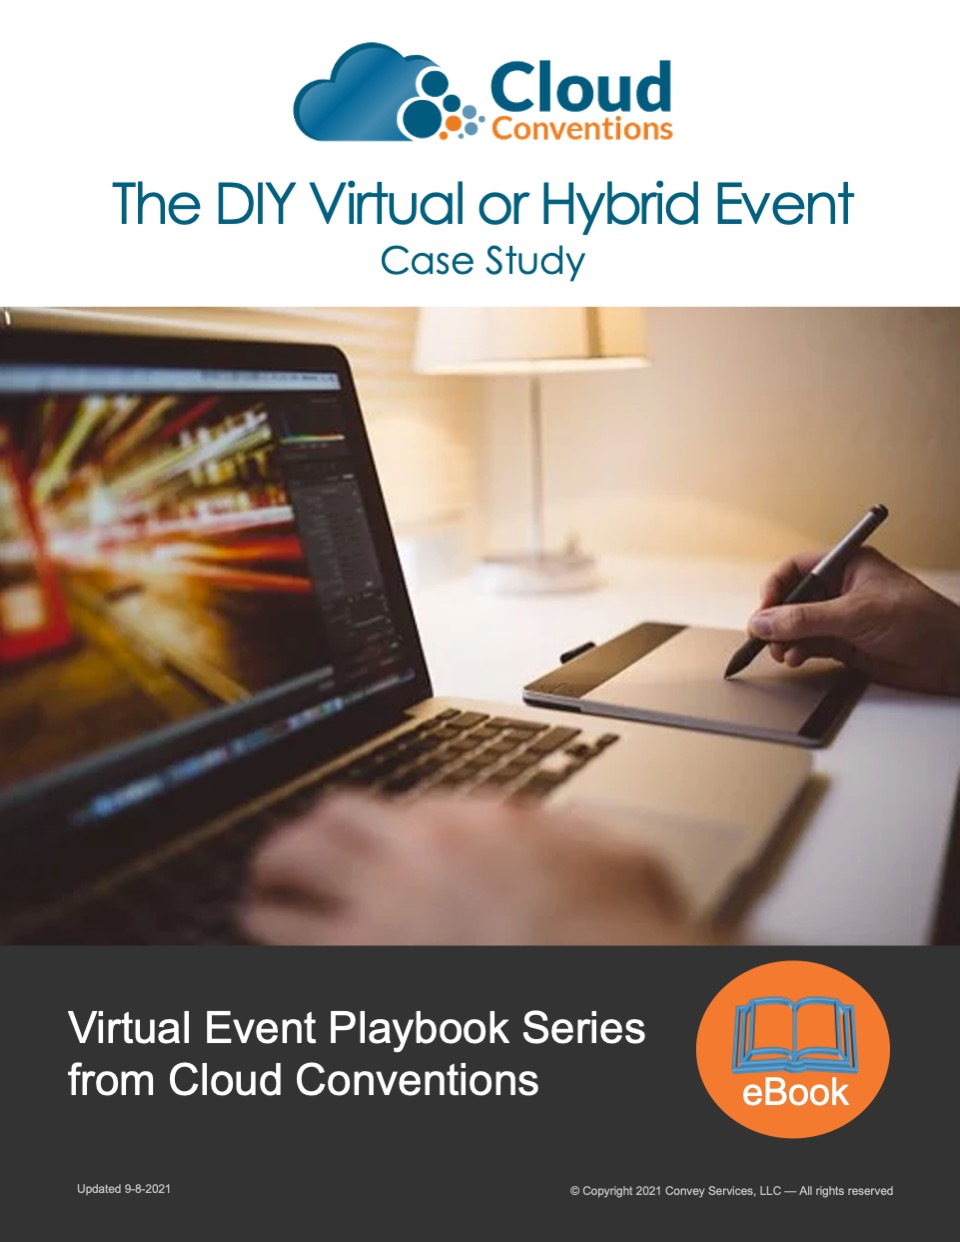 The DIY Virtual and Hybrid Event — Case Study